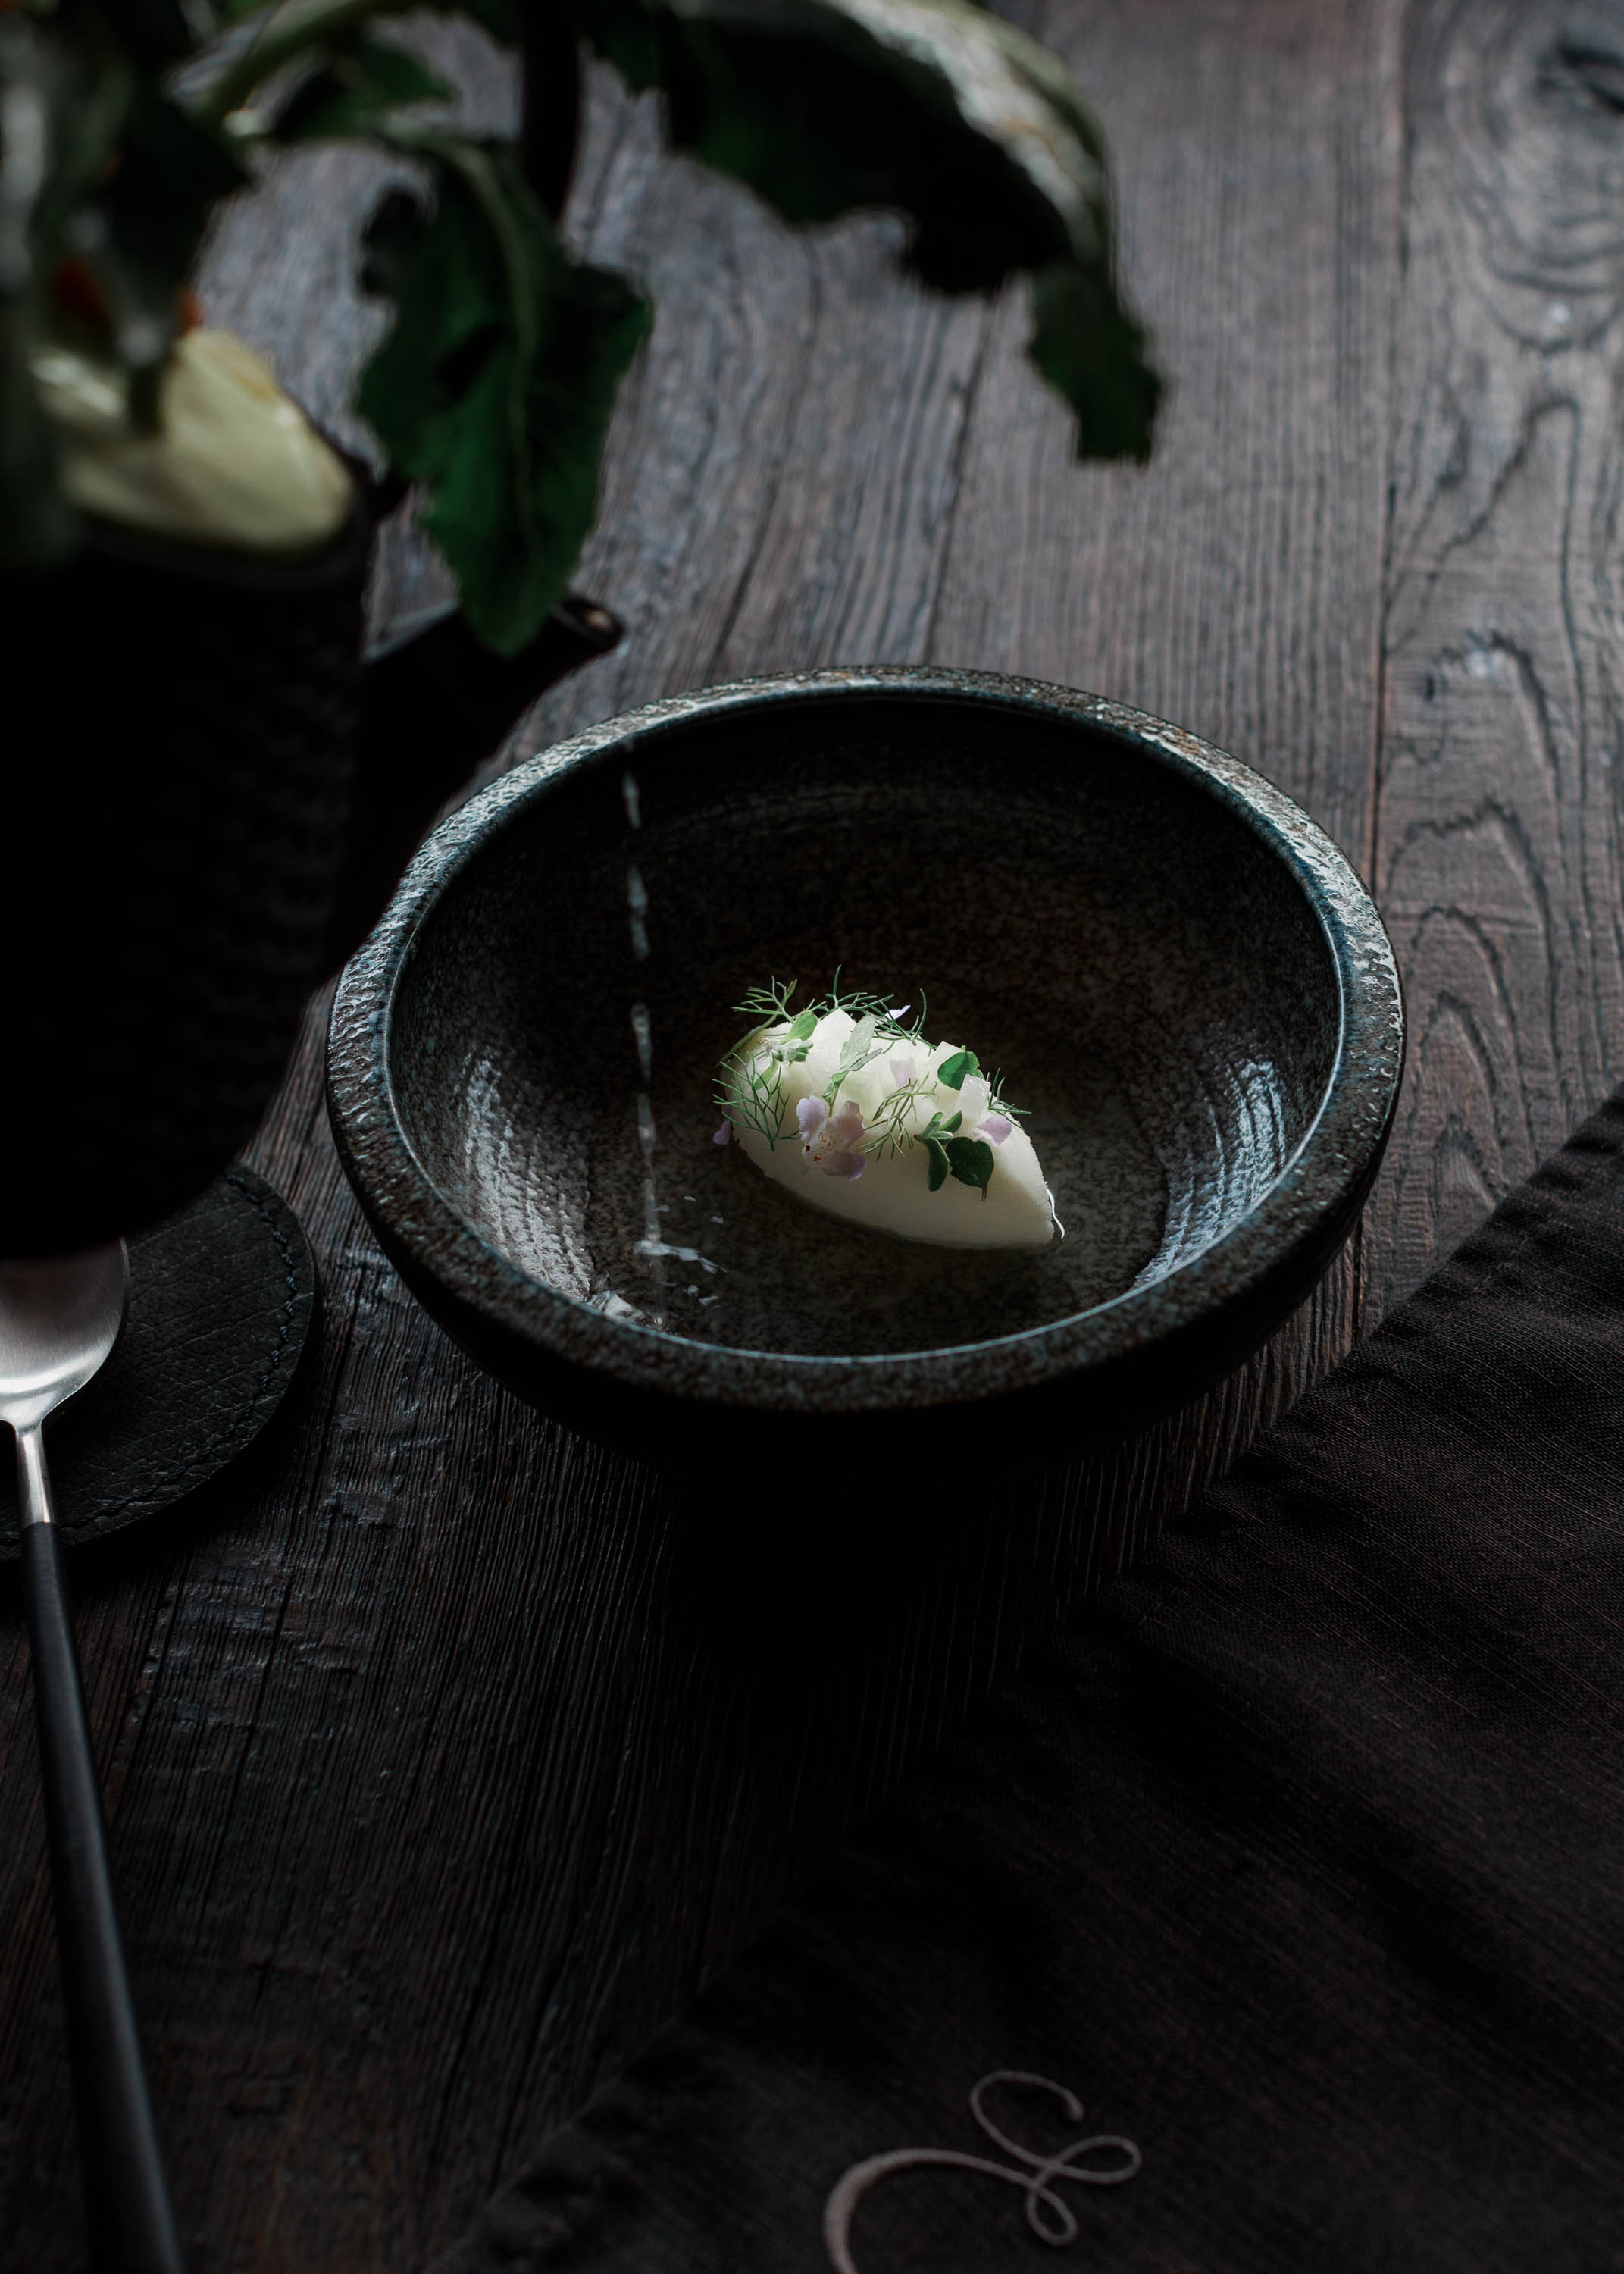 estelle-scott-pickett-melbourne-food-photography-palatte-cleanser